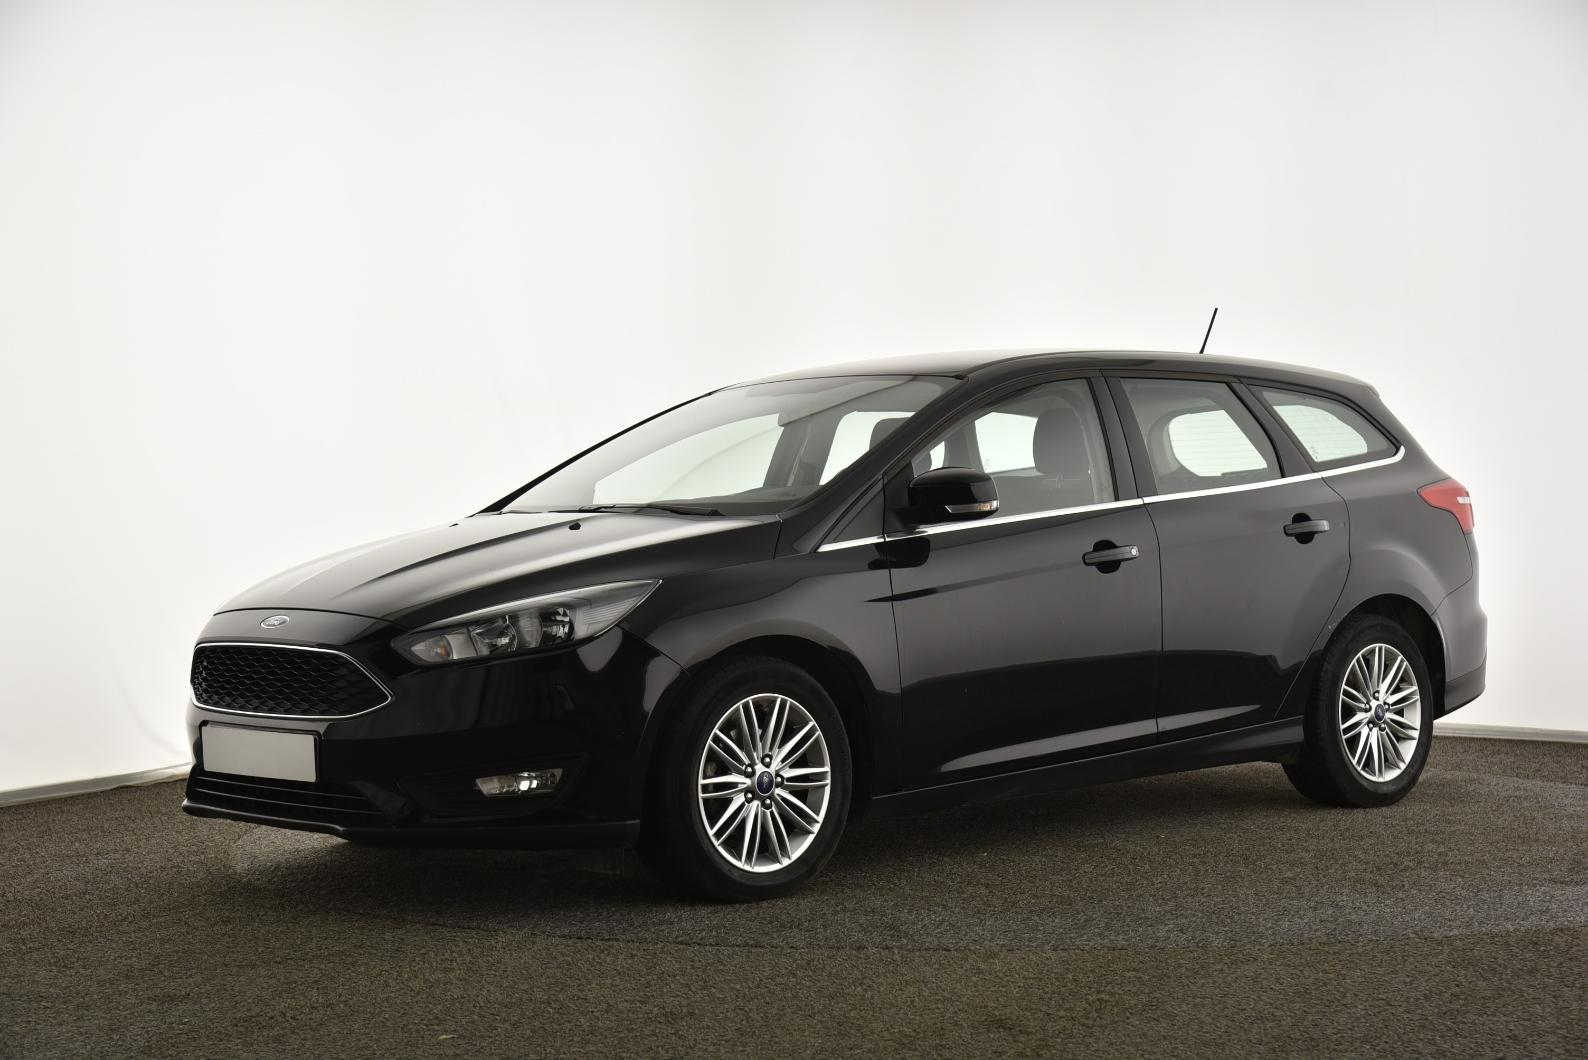 FORD FOCUS SW Focus SW 1.0 EcoBoost 125 S&S Sync Edition